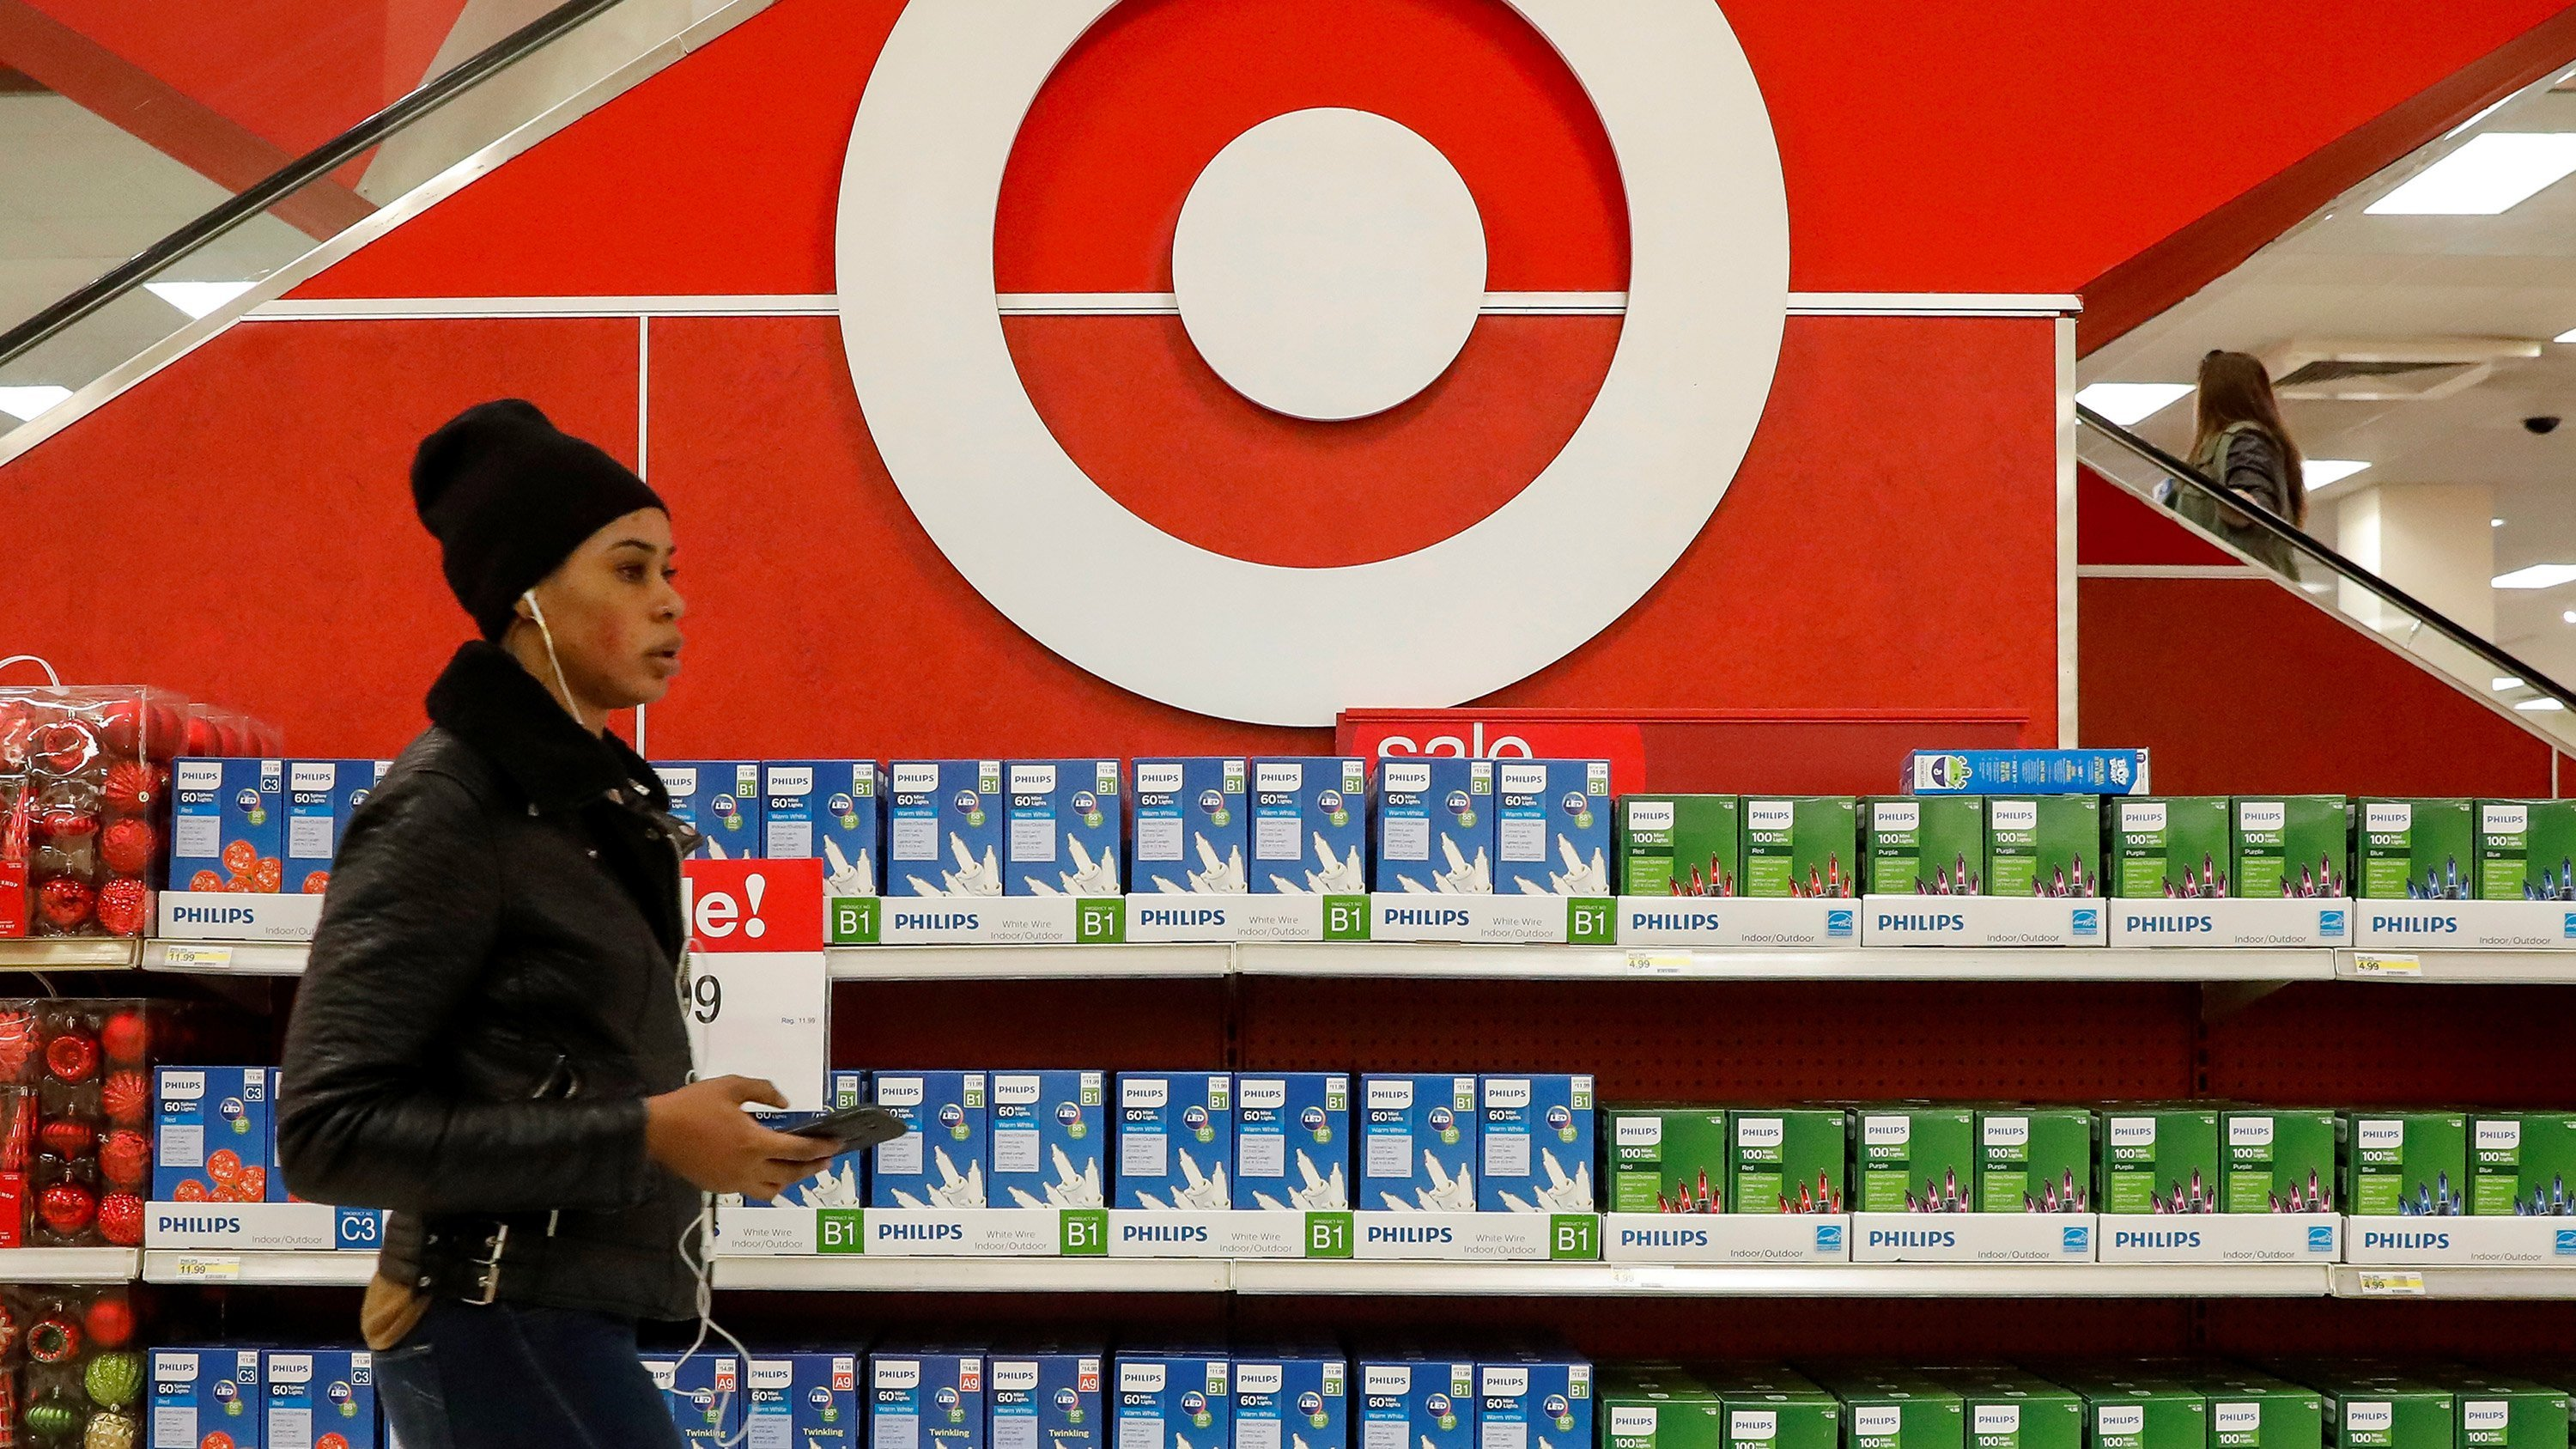 Target is one of the hottest stocks of 2019